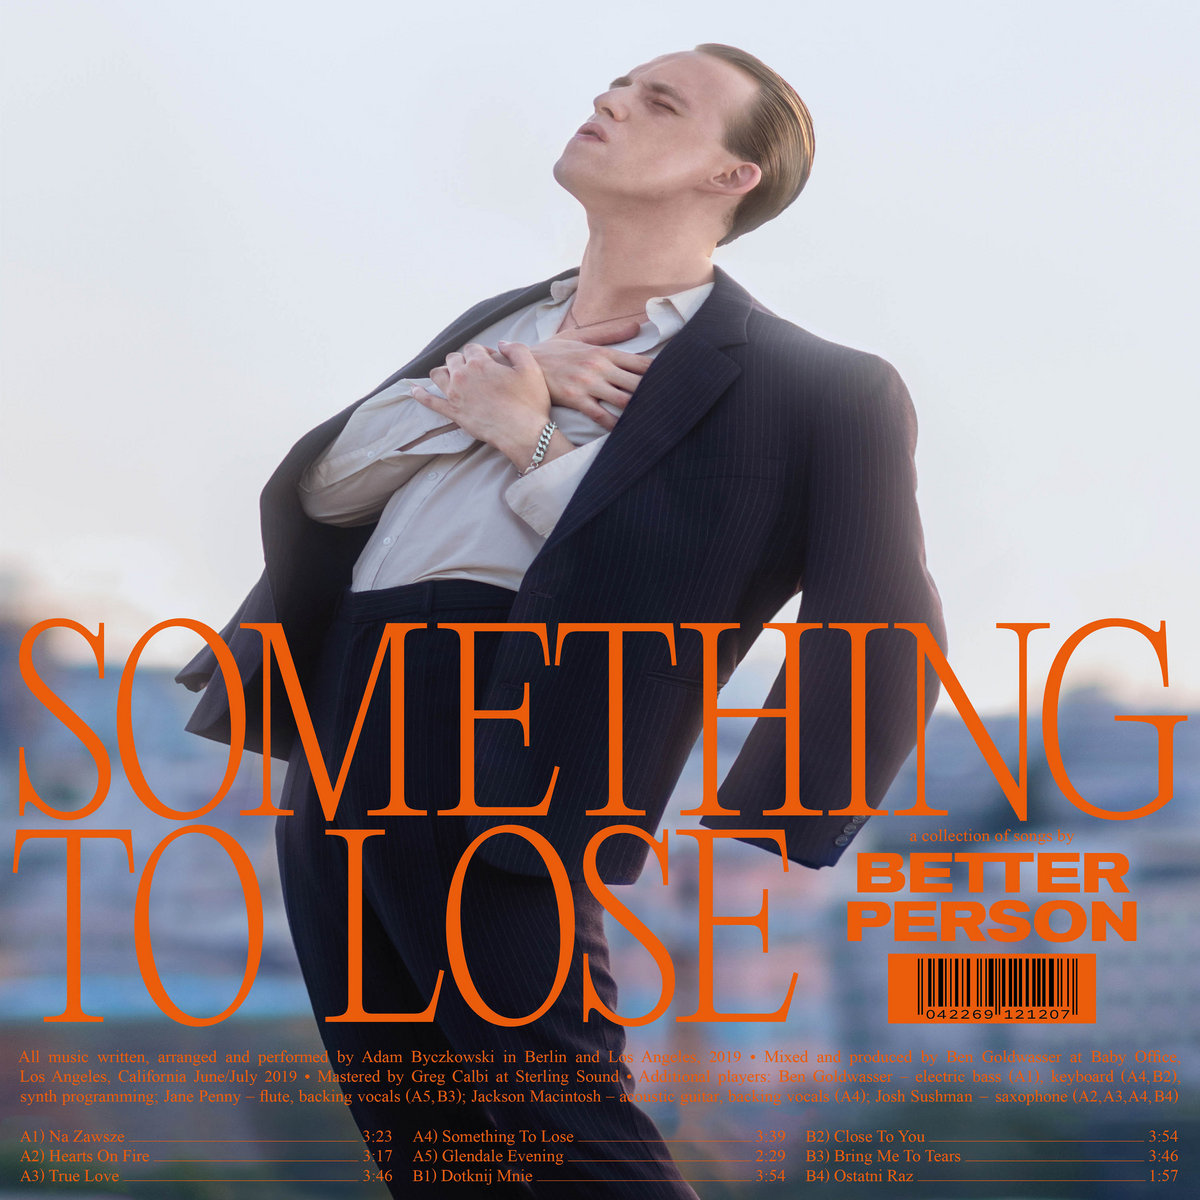 Something to Lose | Better Person